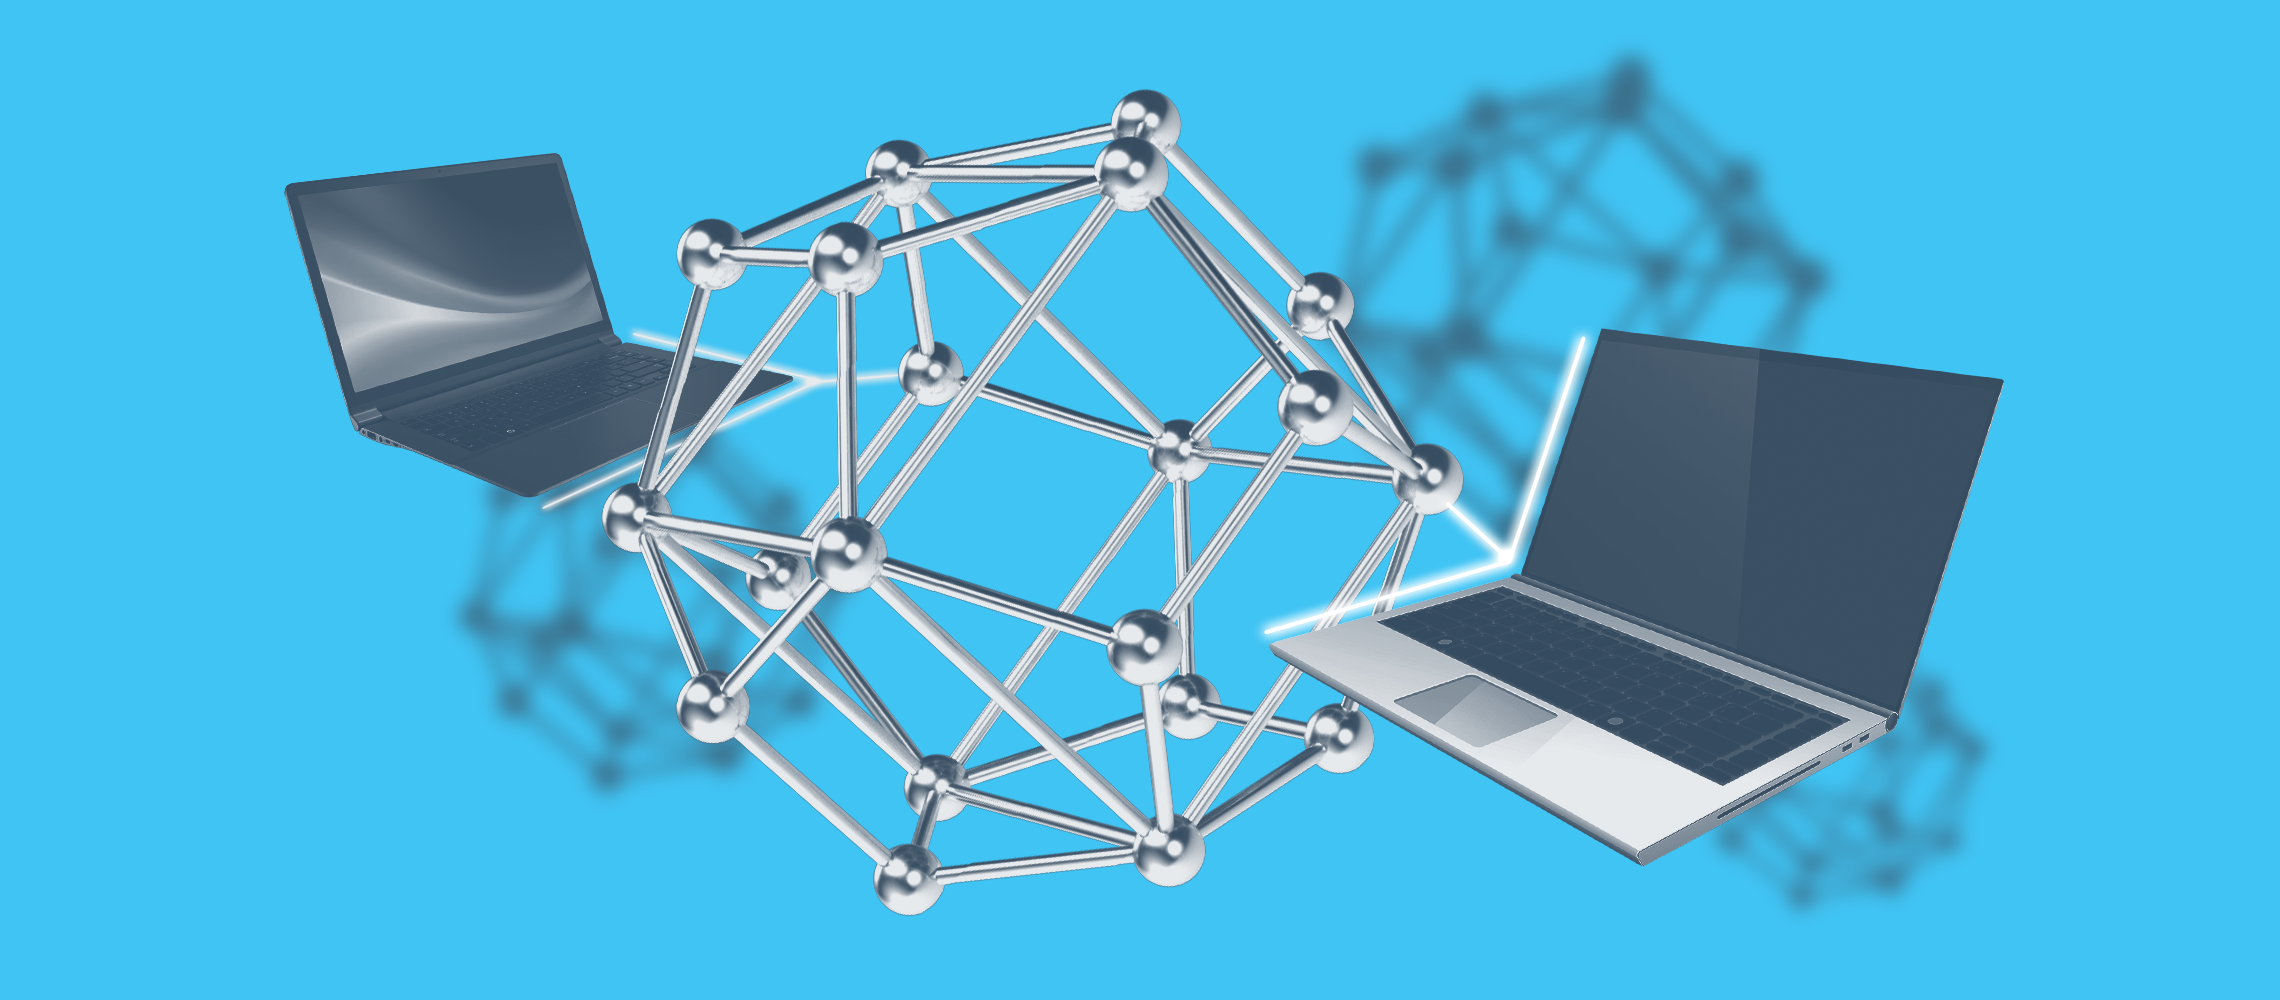 IaaS in VMmanager: Users can configure private networks and create a virtual infrastructure